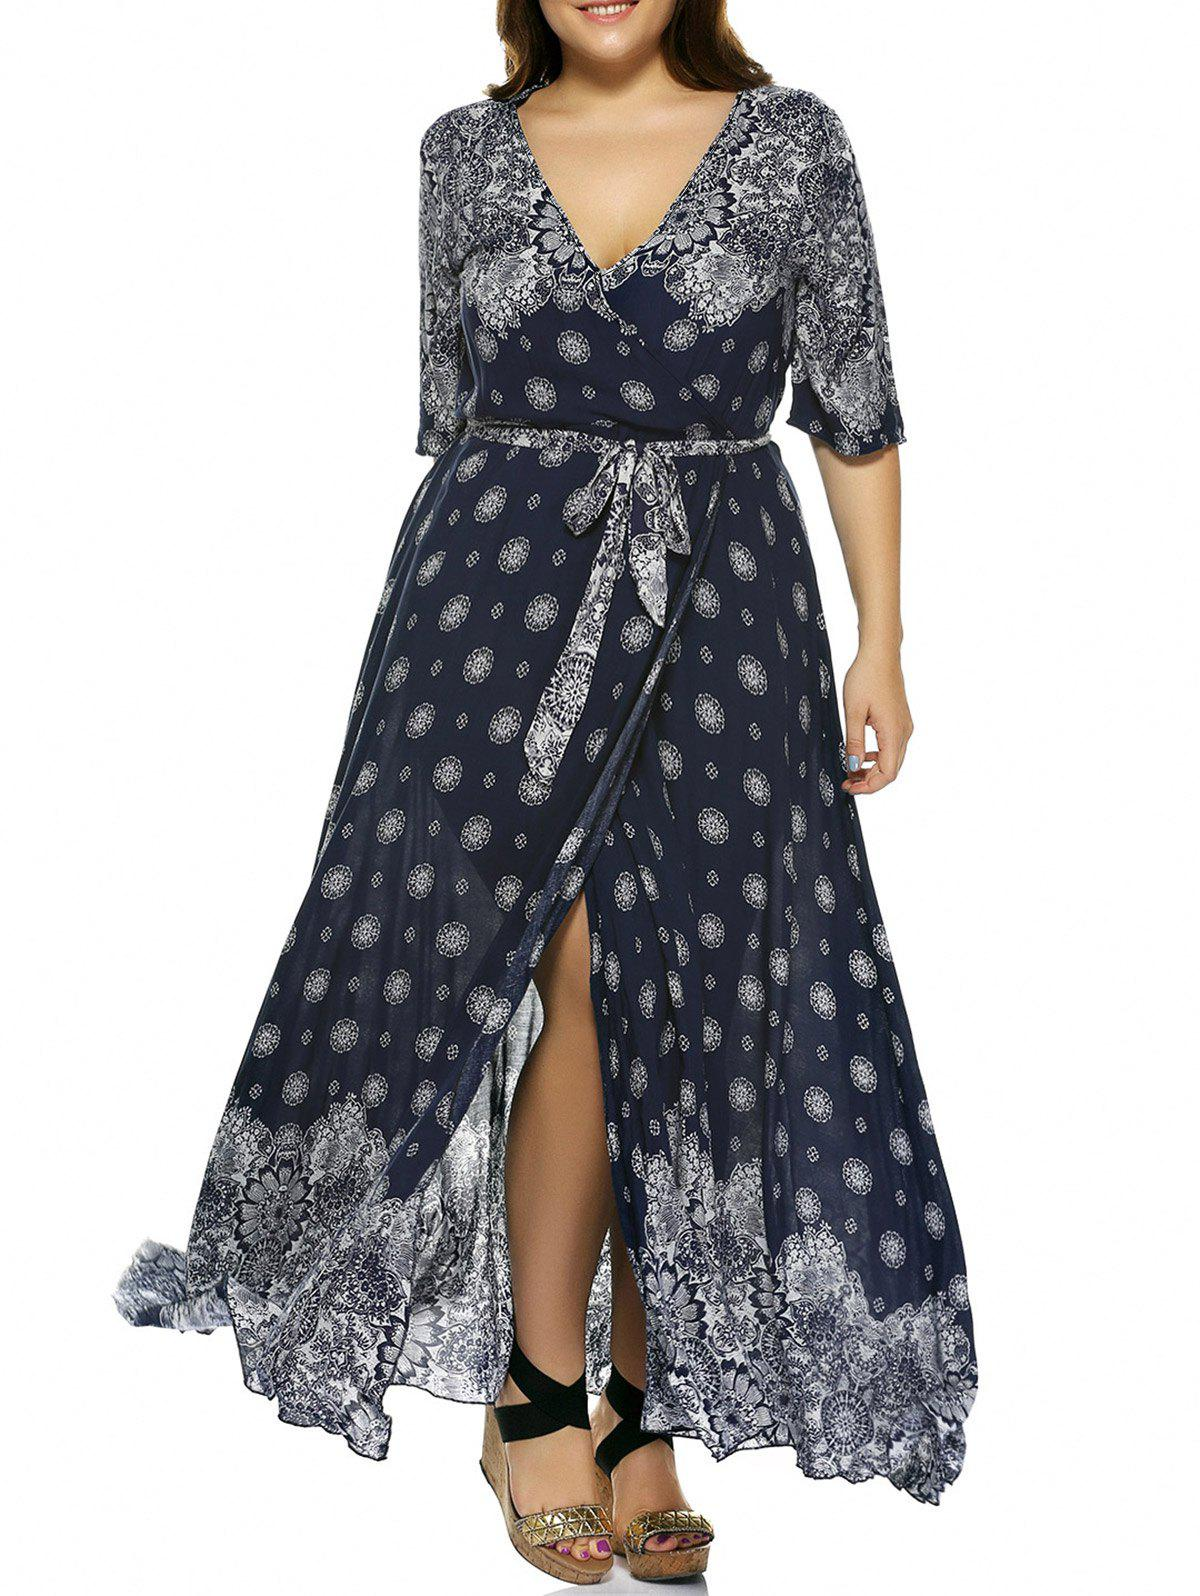 1055abccb5eb8 51% OFF   2019 Plus Size Boho Print Flowy Beach Wrap Maxi Dress ...